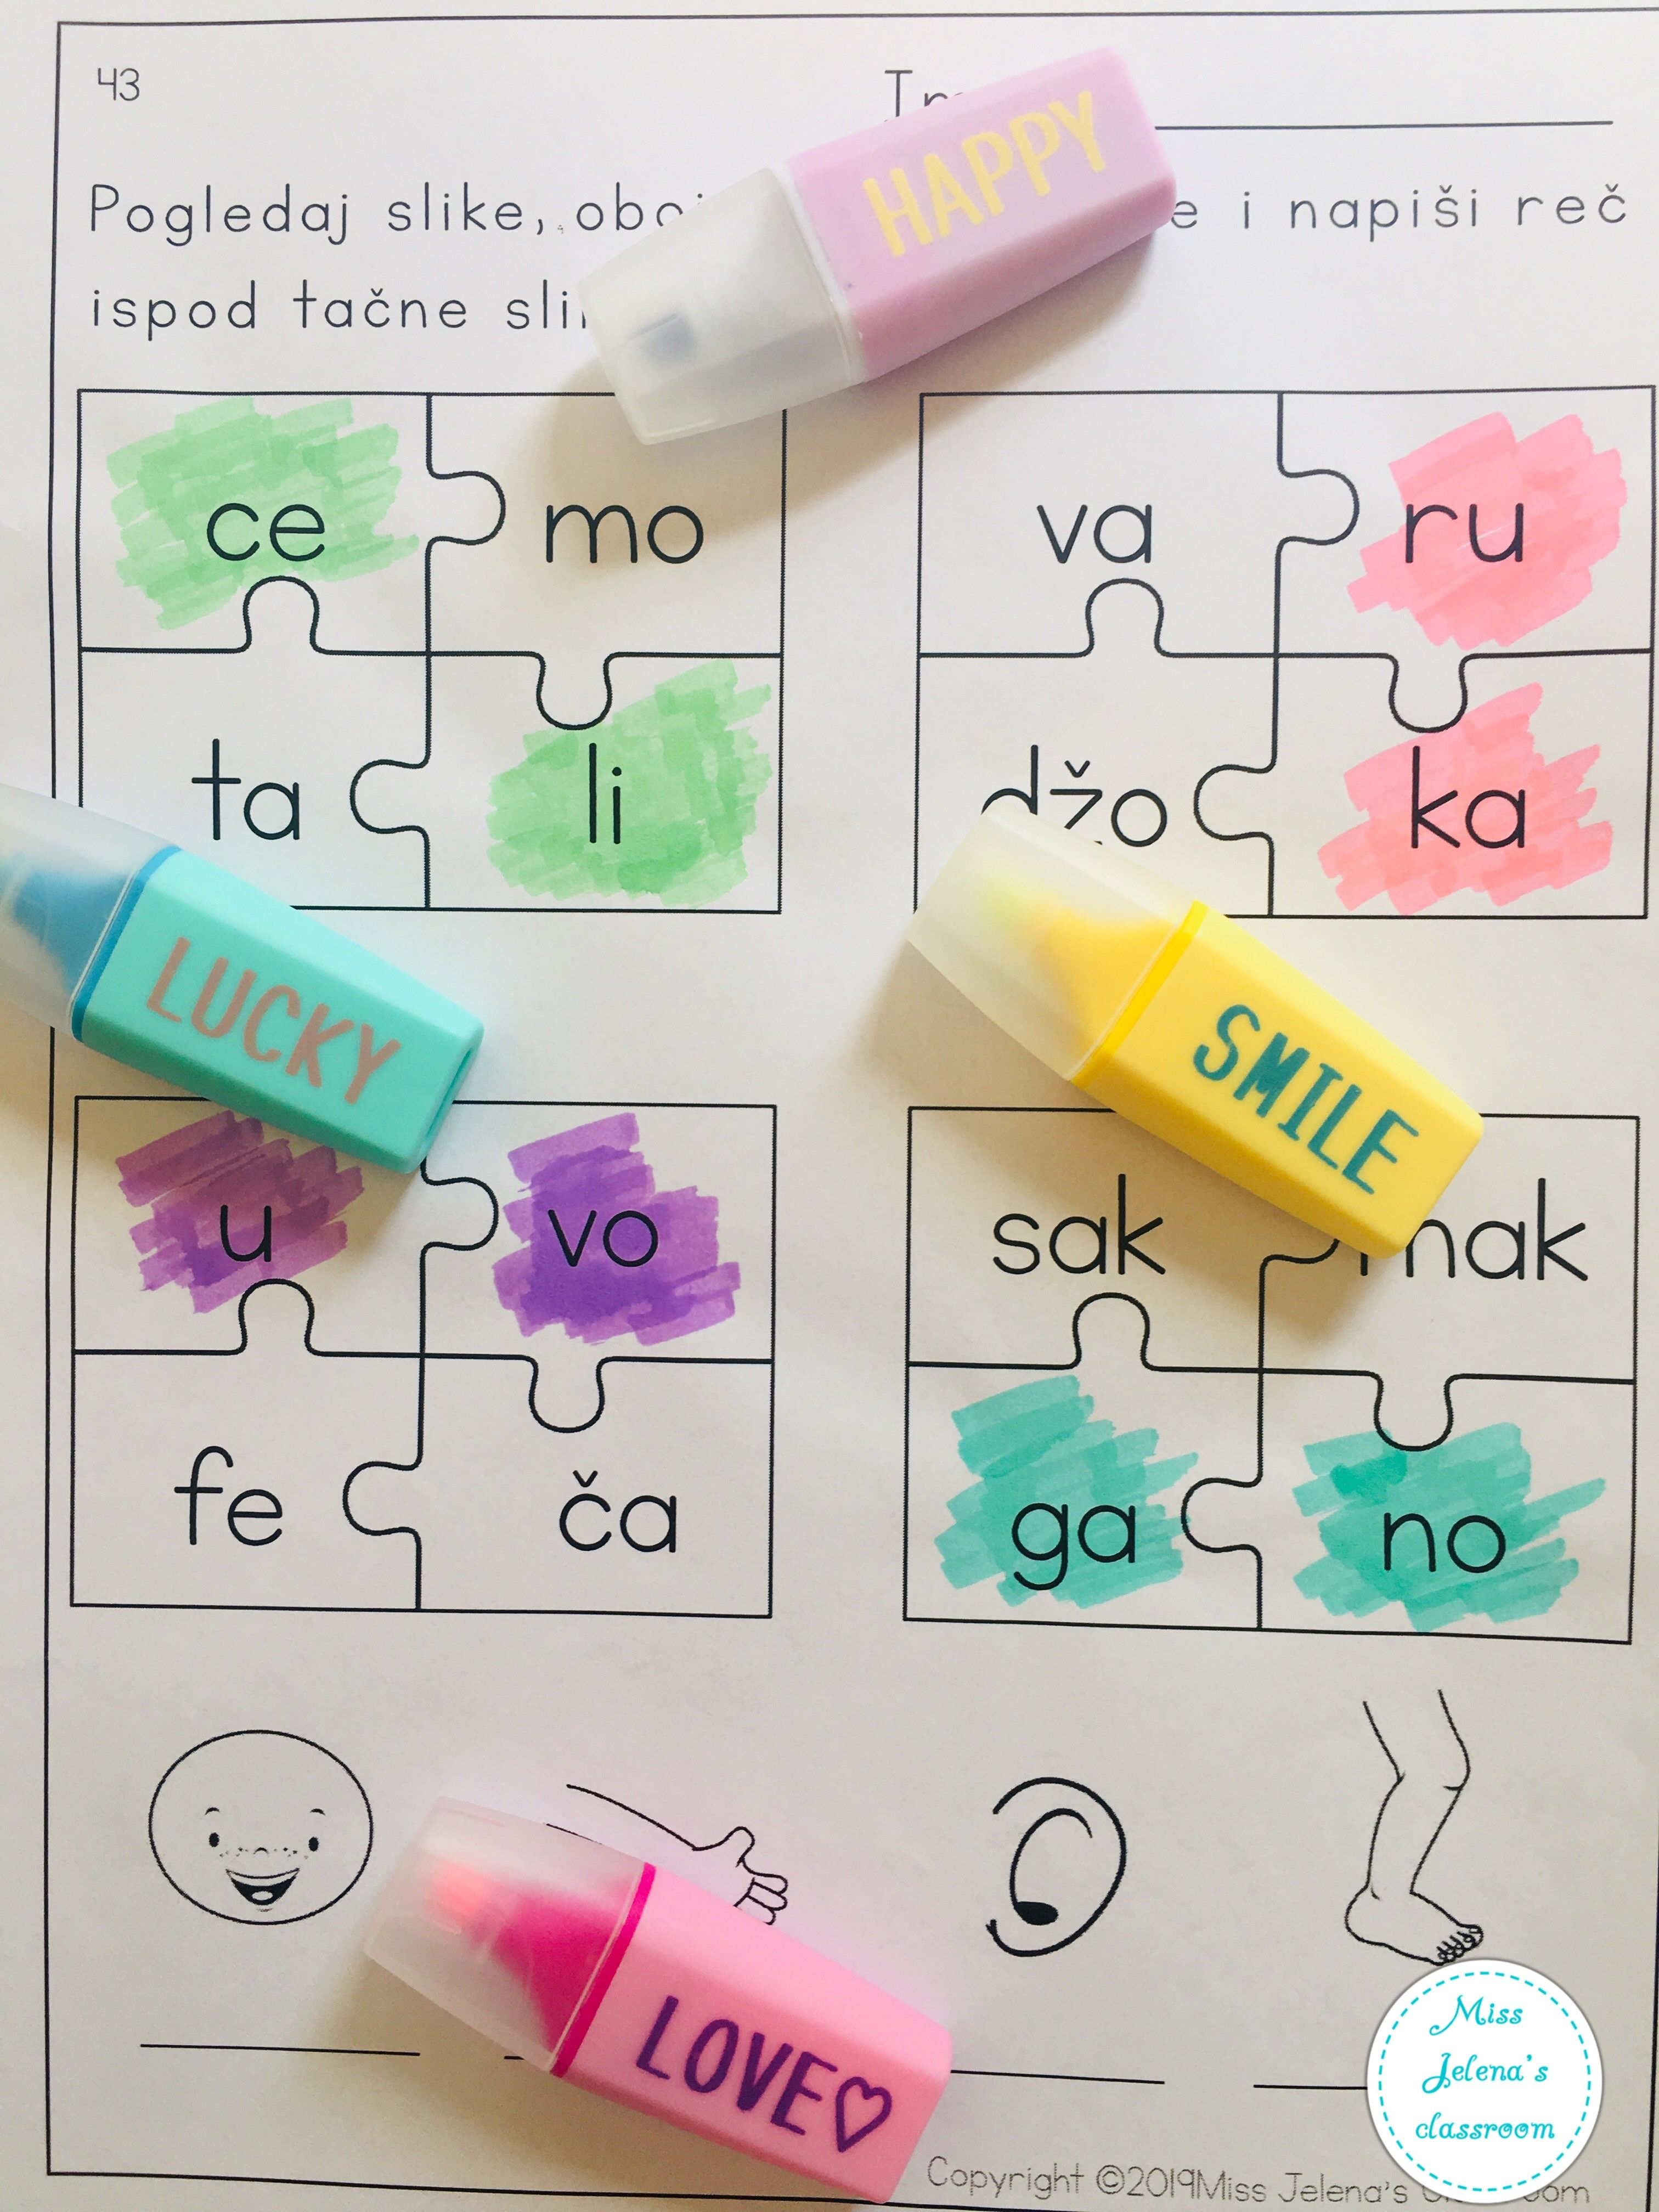 Pin On Serbian Language Resources From My Payhip Store